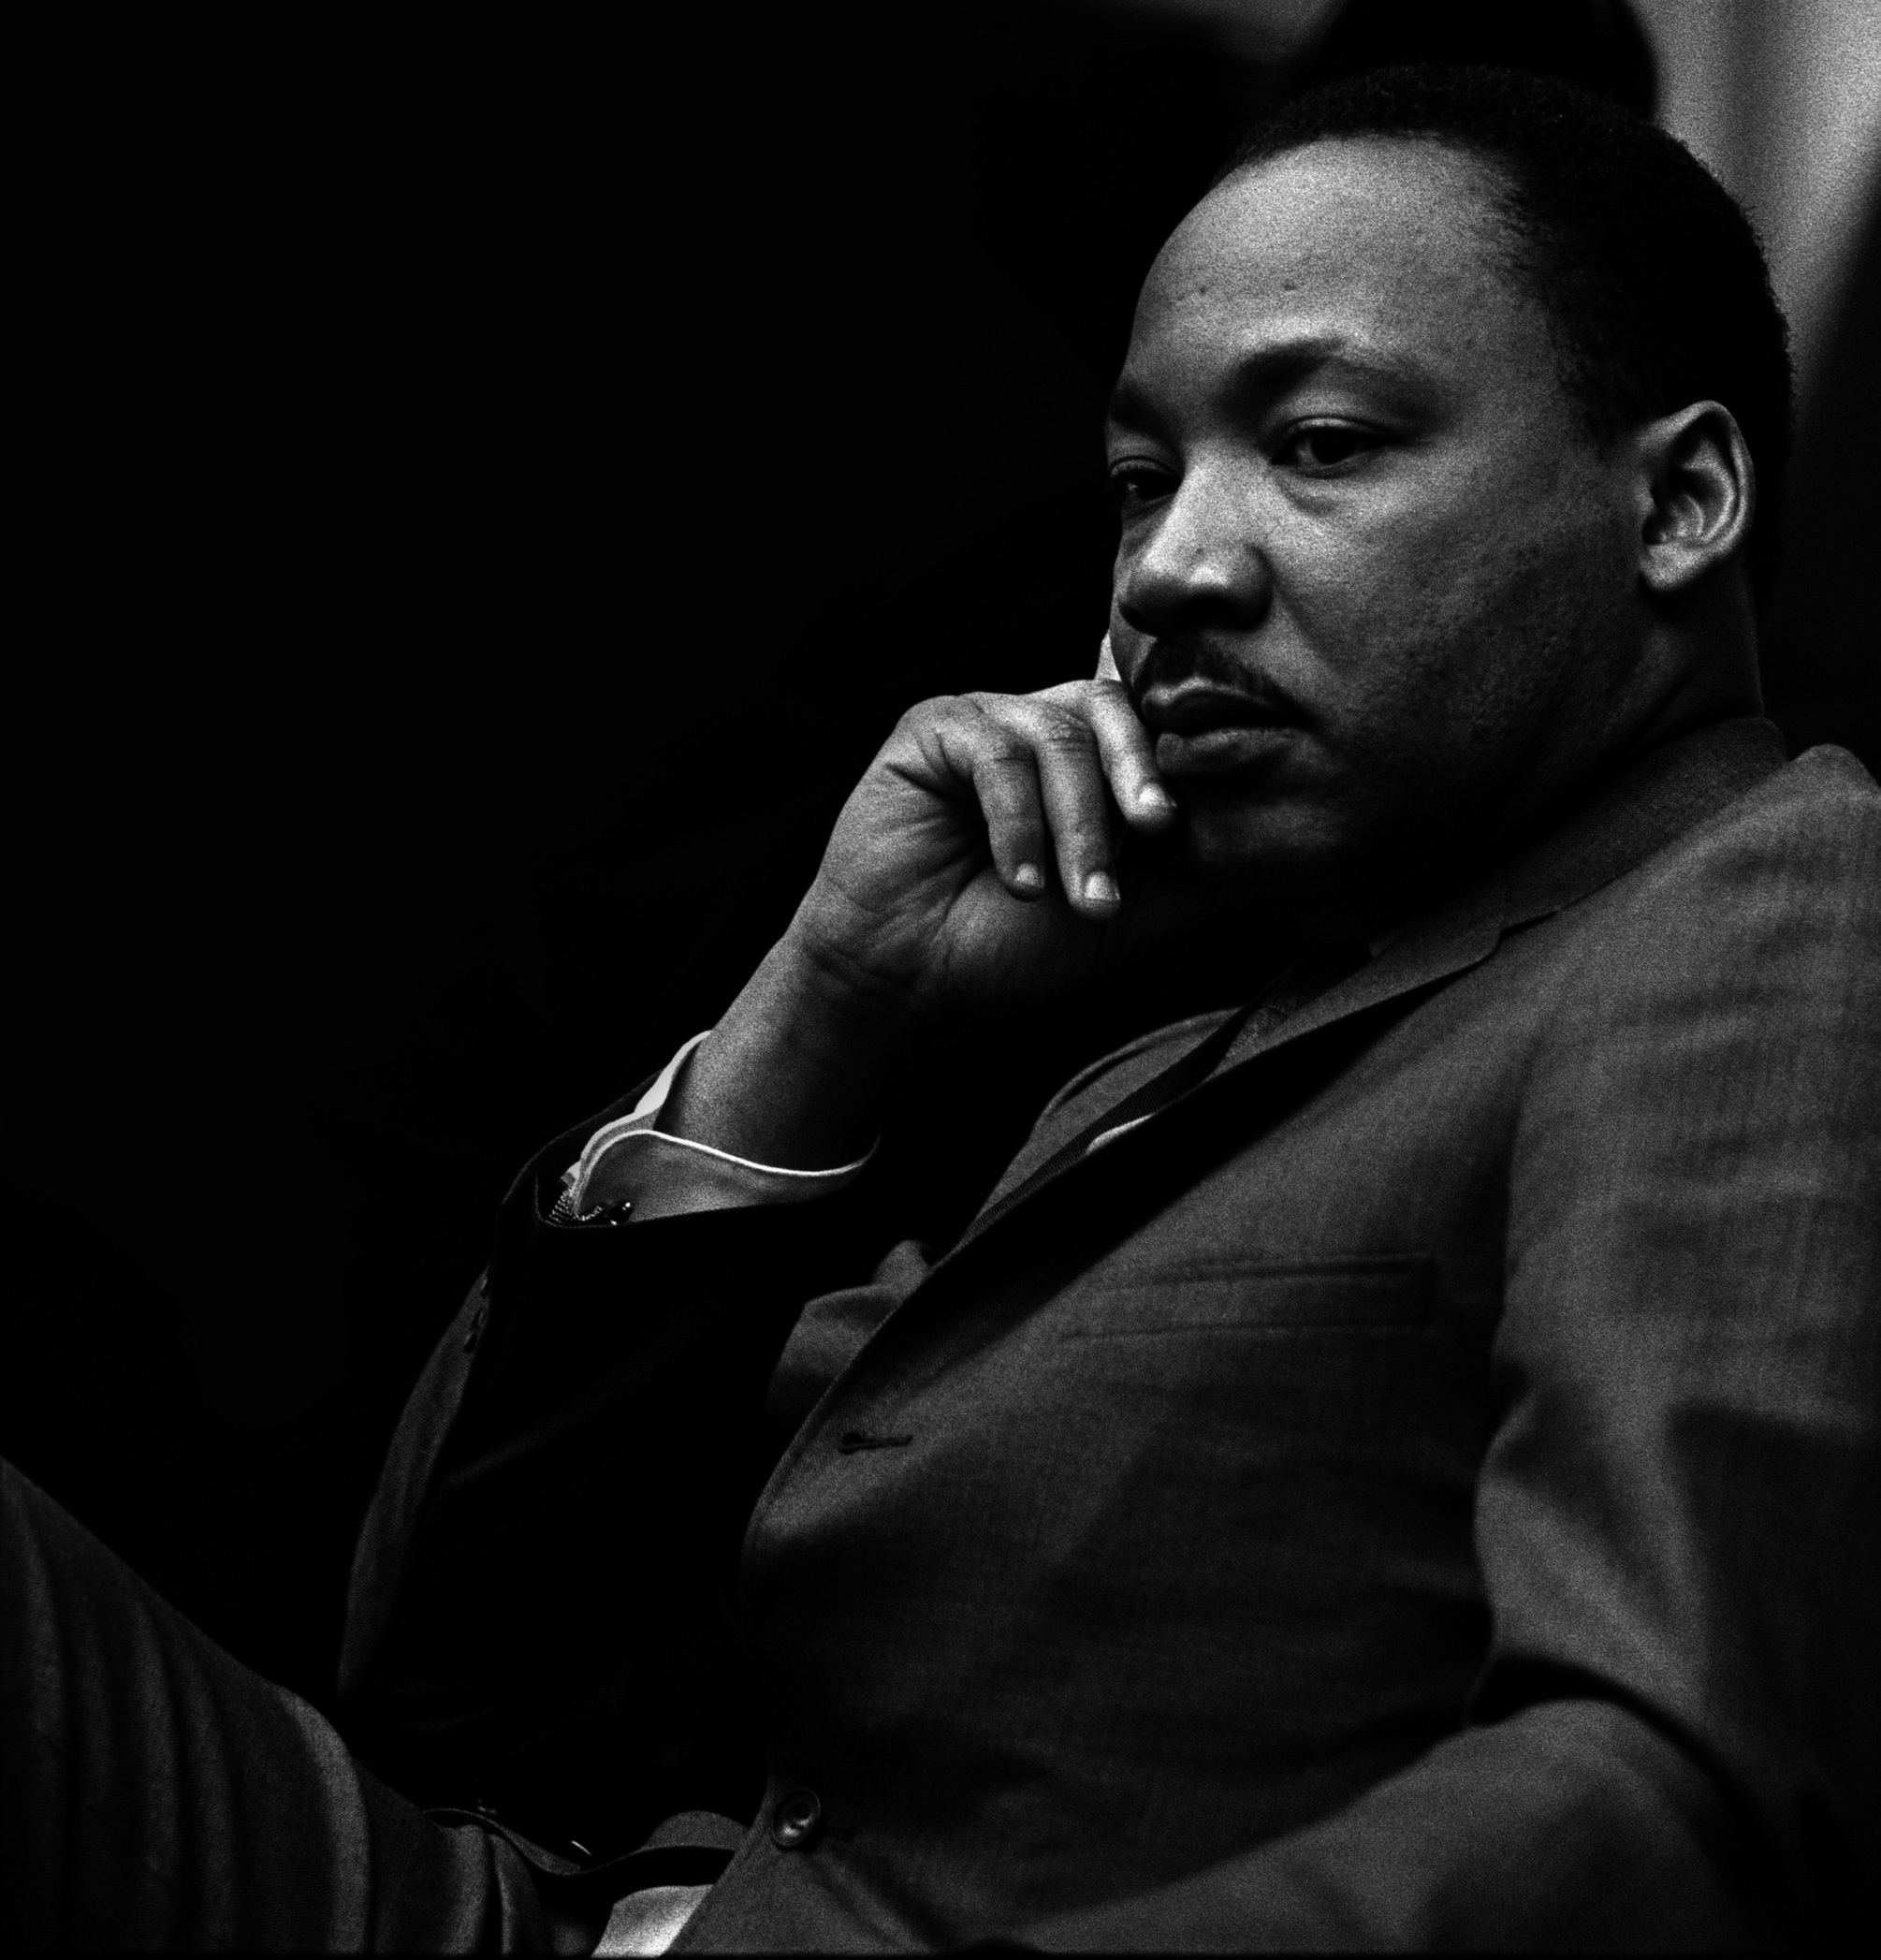 martin luther king - photo #12